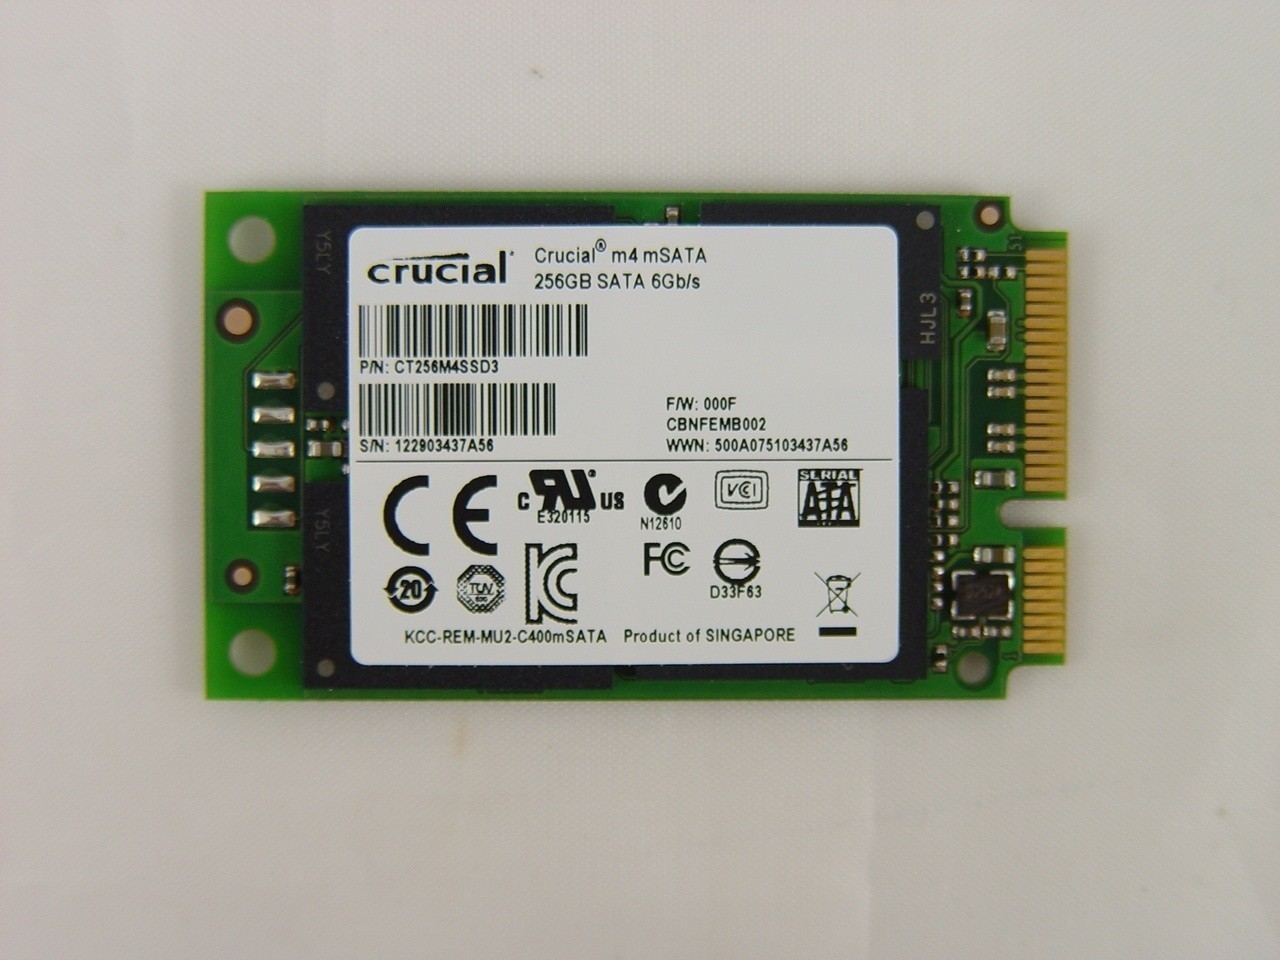 crucial_m4_msata_256gb_solid_state_drive_review